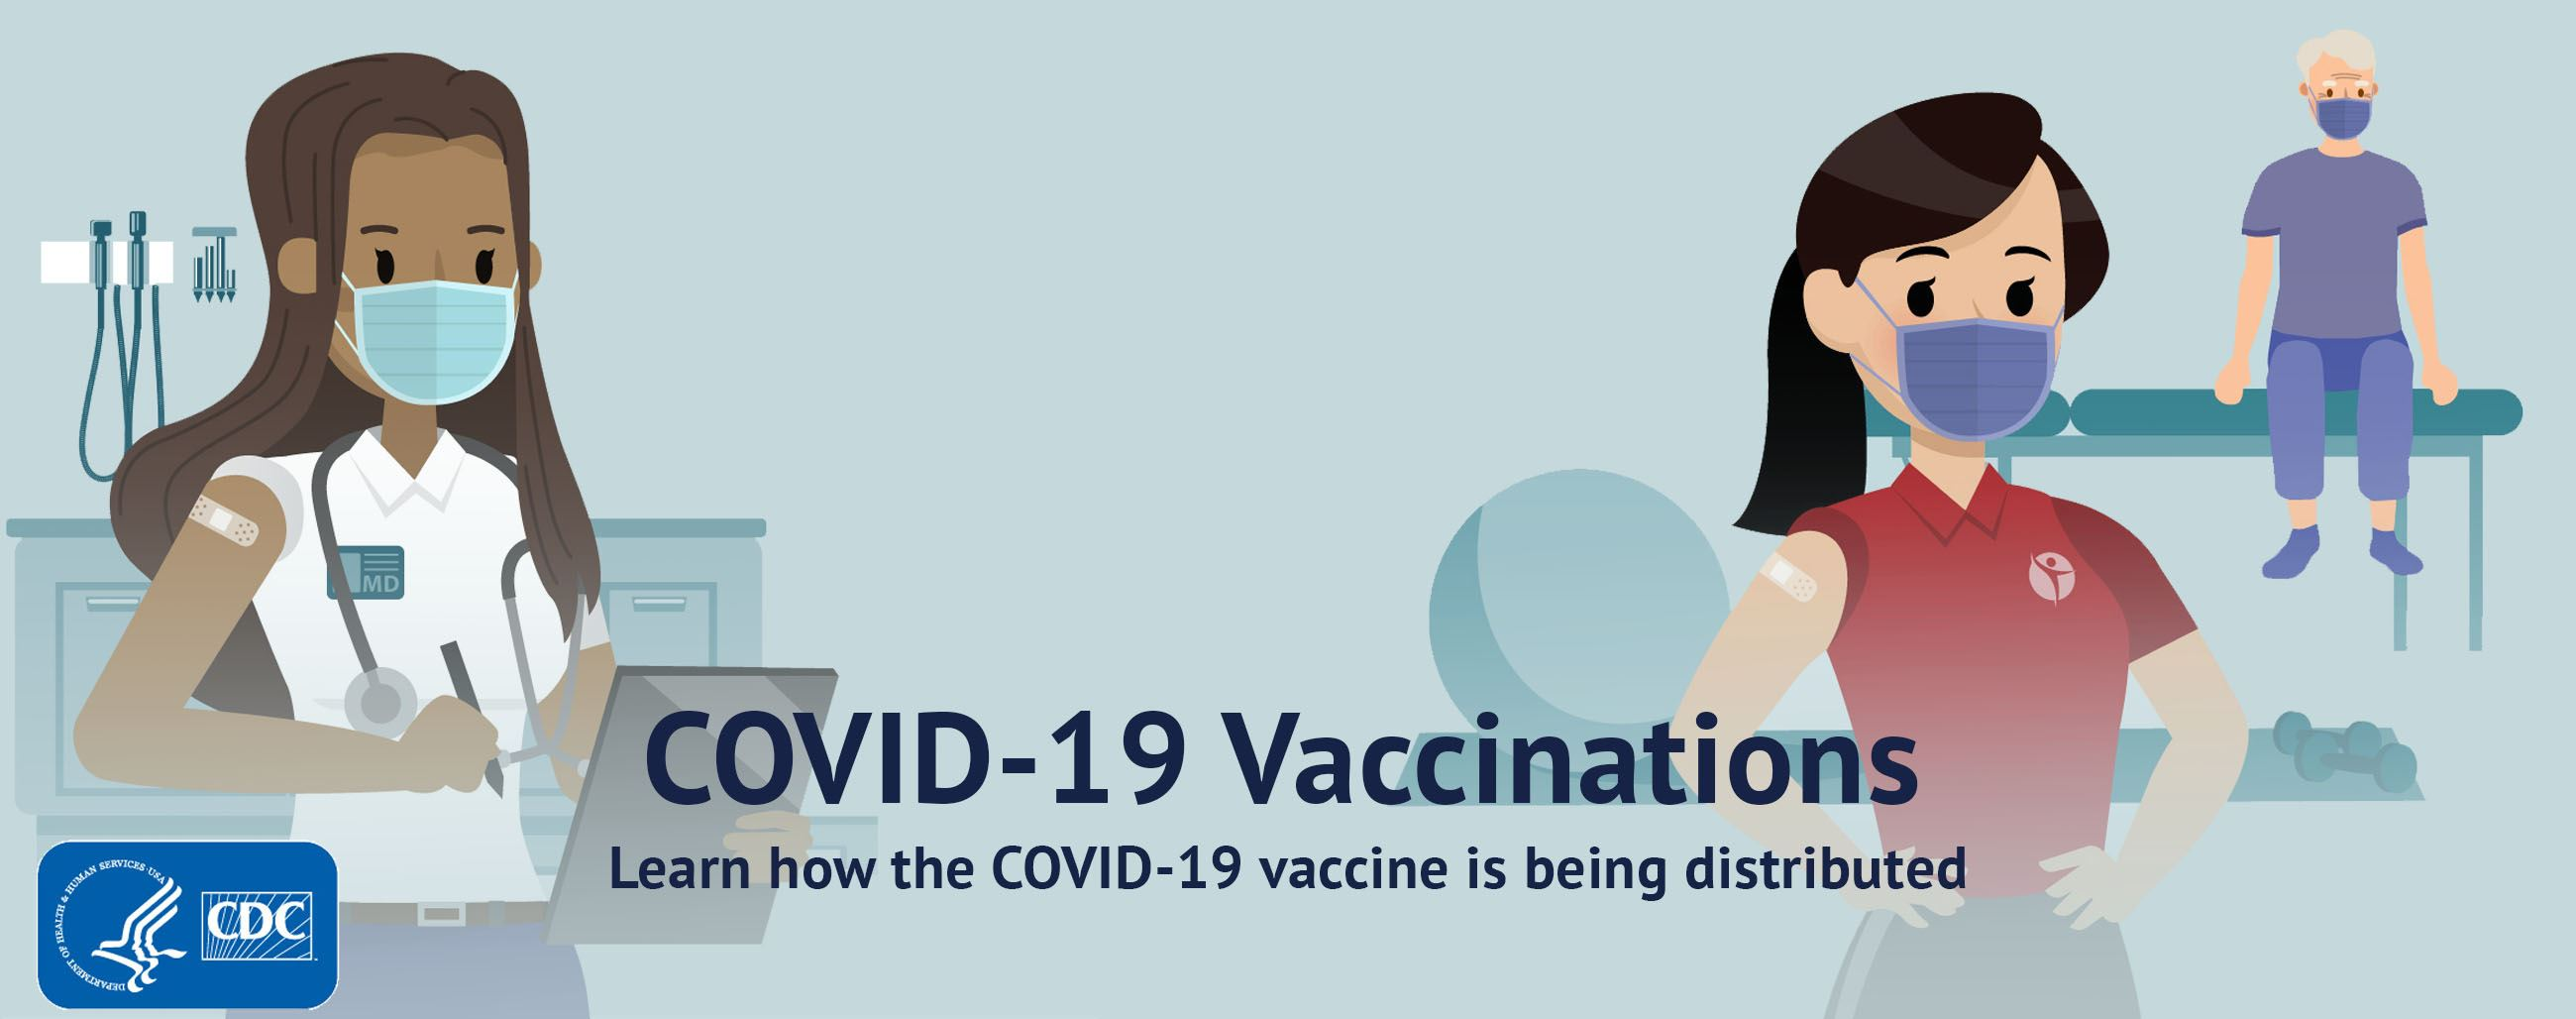 Learn how the COVID-19 vaccine is being distributed